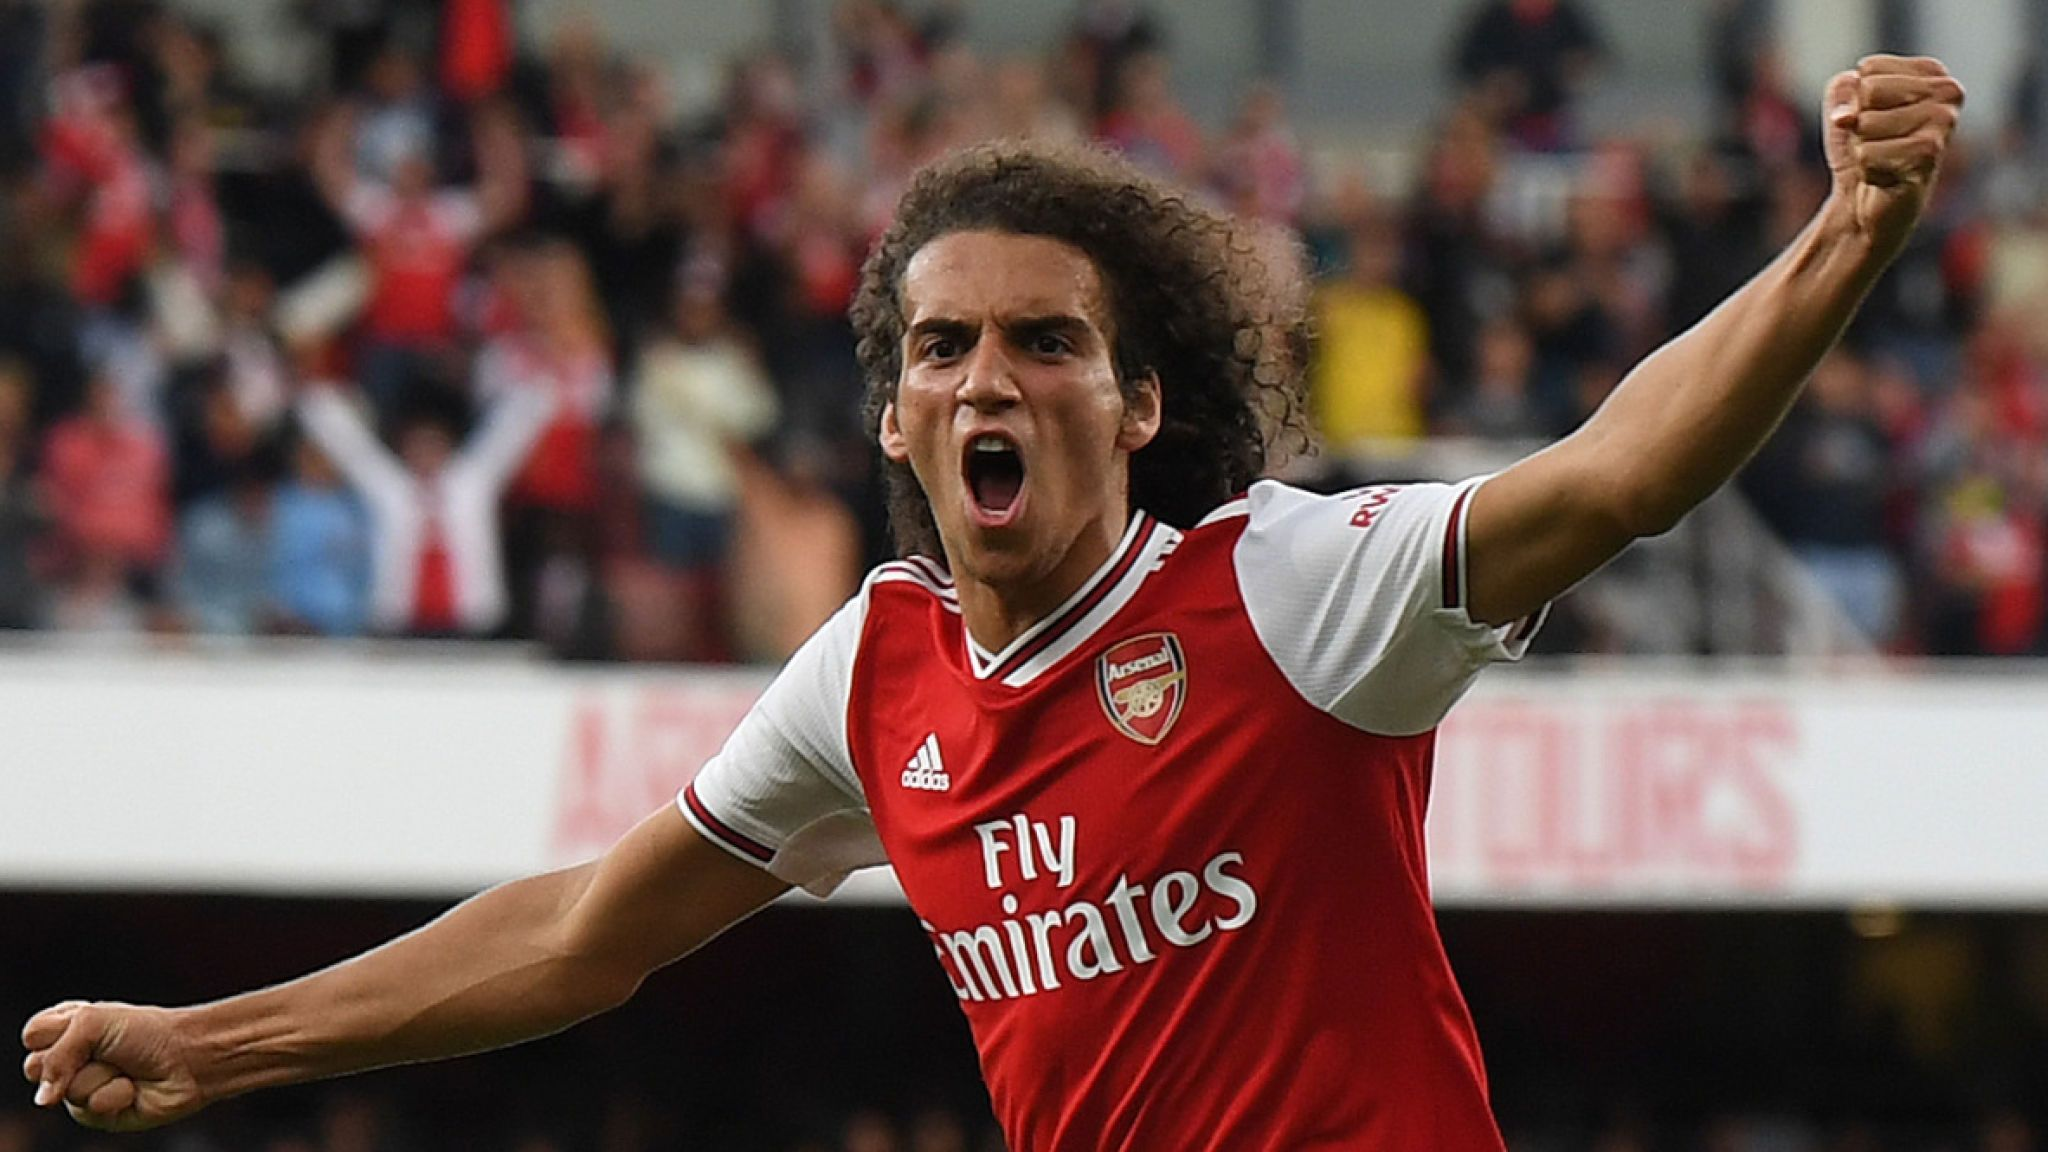 Transfer: Arsenal chiefs set price for Guendouzi